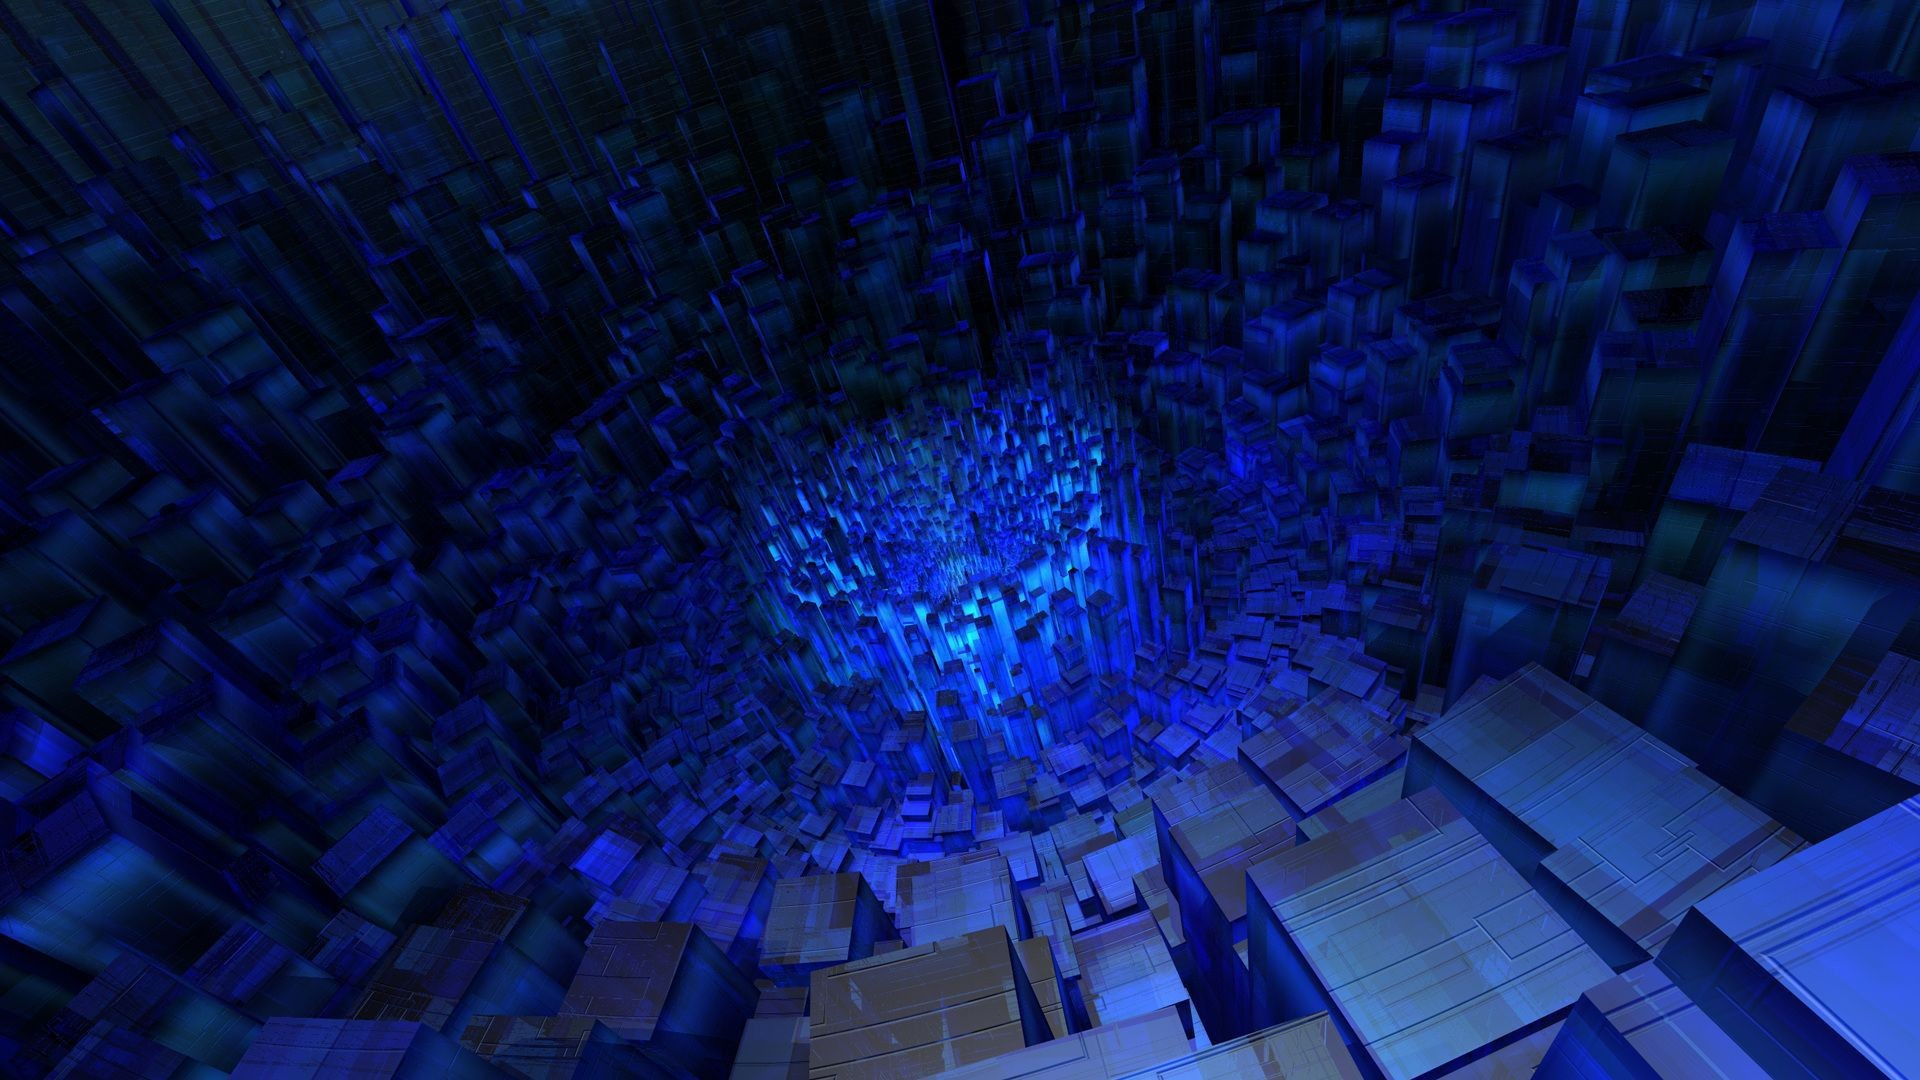 3D Blue Cube Tunnel Wallpaper | HD 3D and Abstract Wallpaper Free Download  …